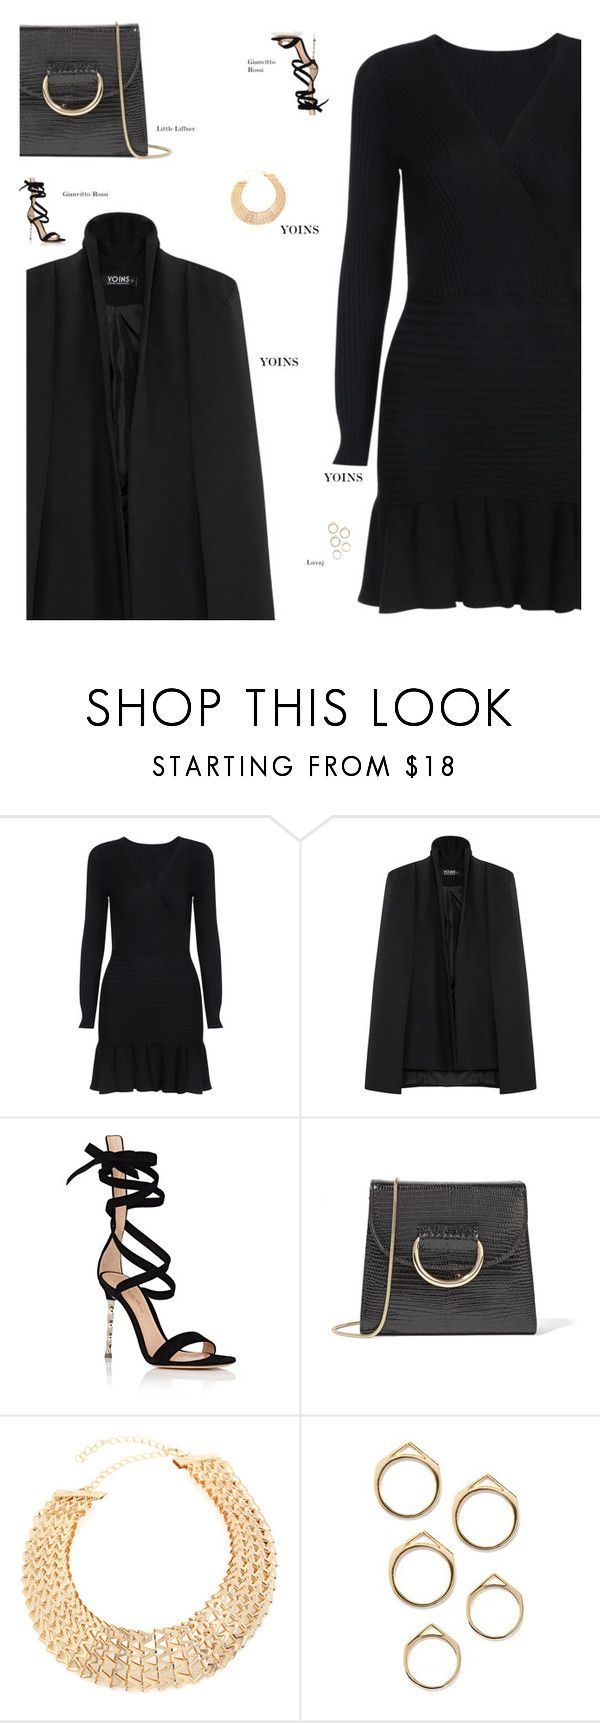 """""""YOINS"""" by s-thinks ❤ liked on Polyvore featuring Gianvito Rossi and Little Liffner"""